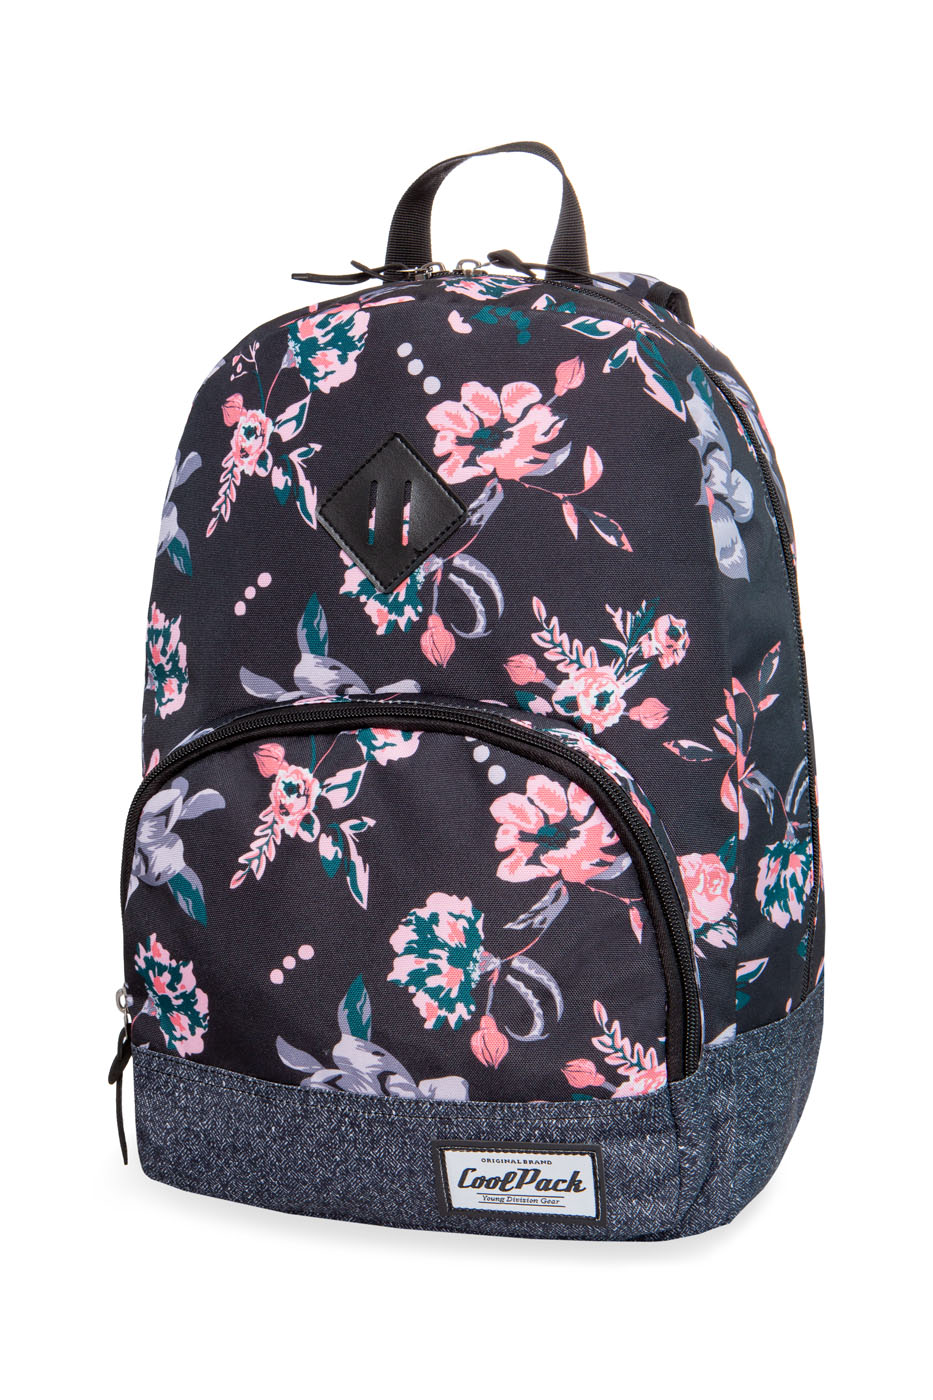 Coolpack - classic - backpack for youth - dark romance